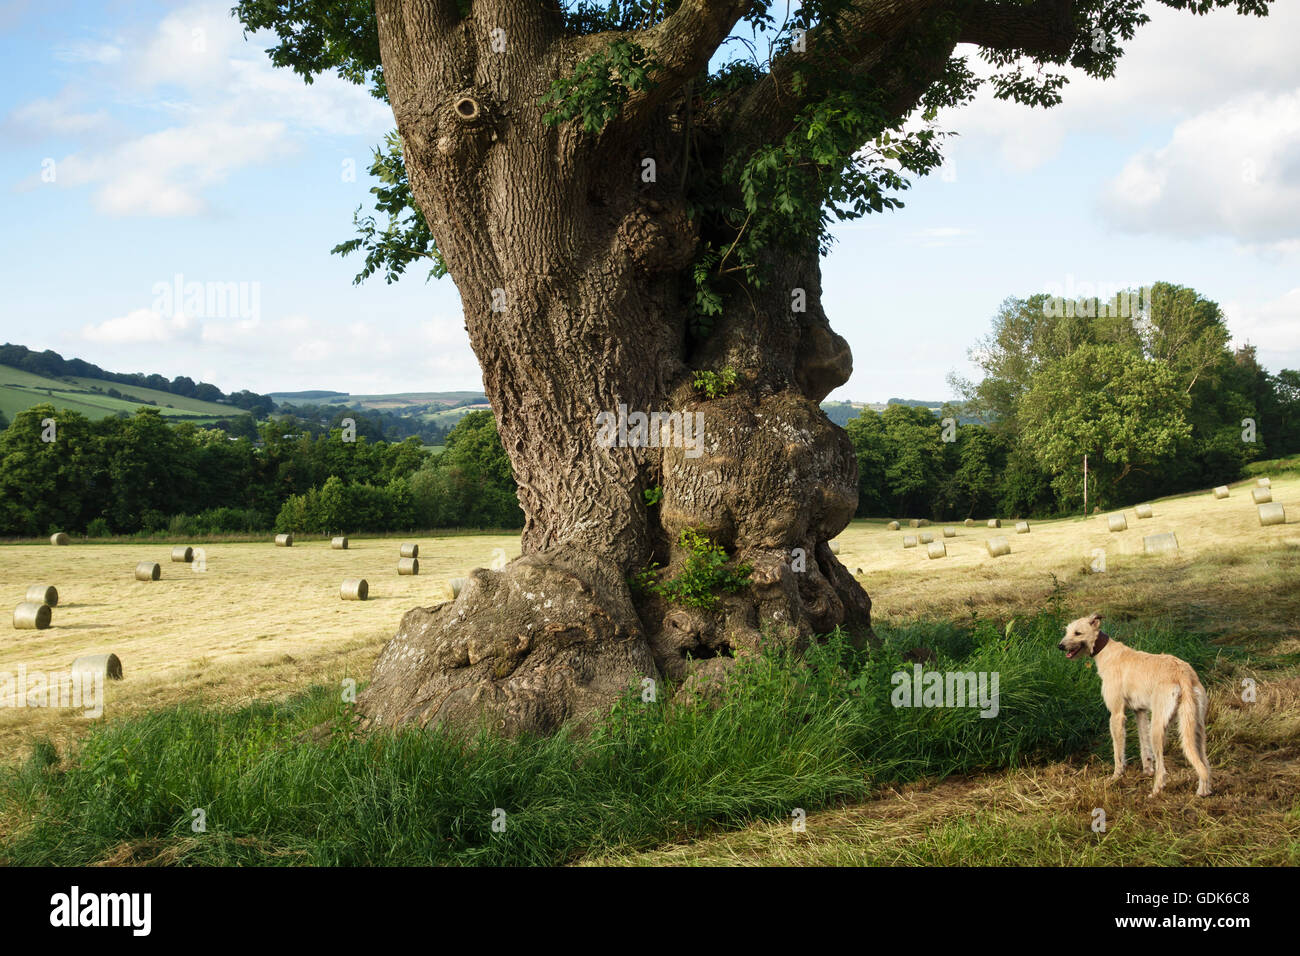 Herefordshire, UK. A huge ancient ash tree (fraxinus) in a recently mown hay field, with a lurcher dog - Stock Image